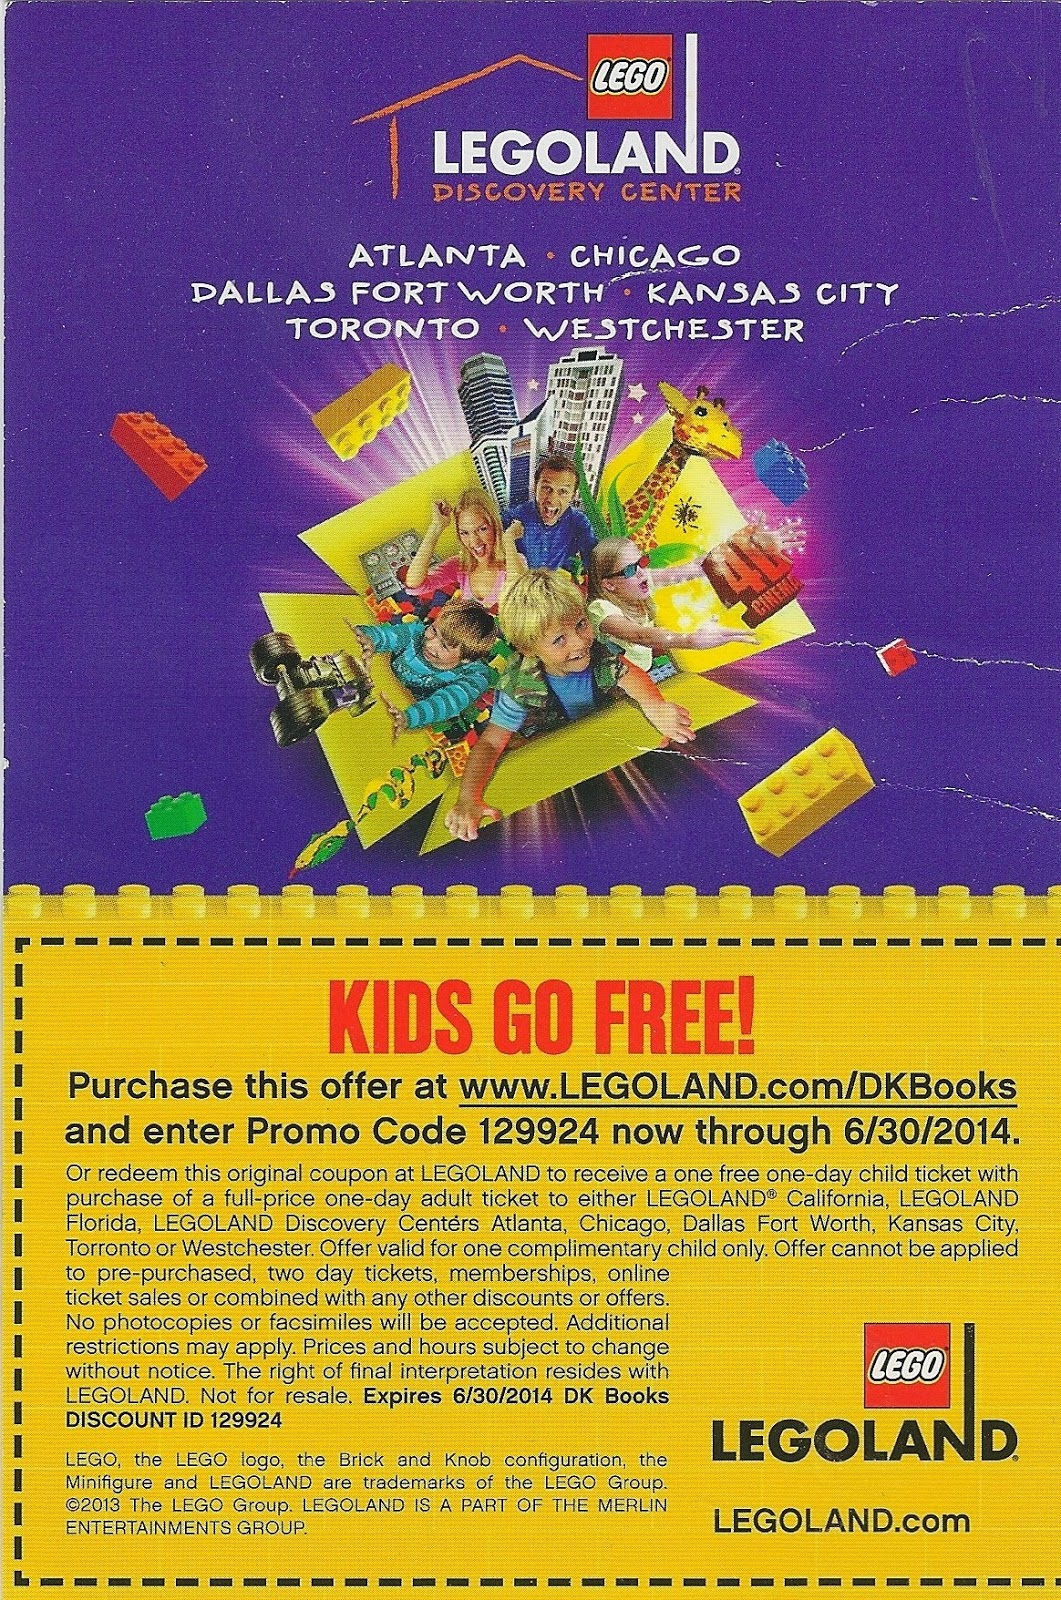 photo relating to Legoland Printable Coupons identified as Legoland atlanta printable discount coupons : Blue nile discount coupons 20